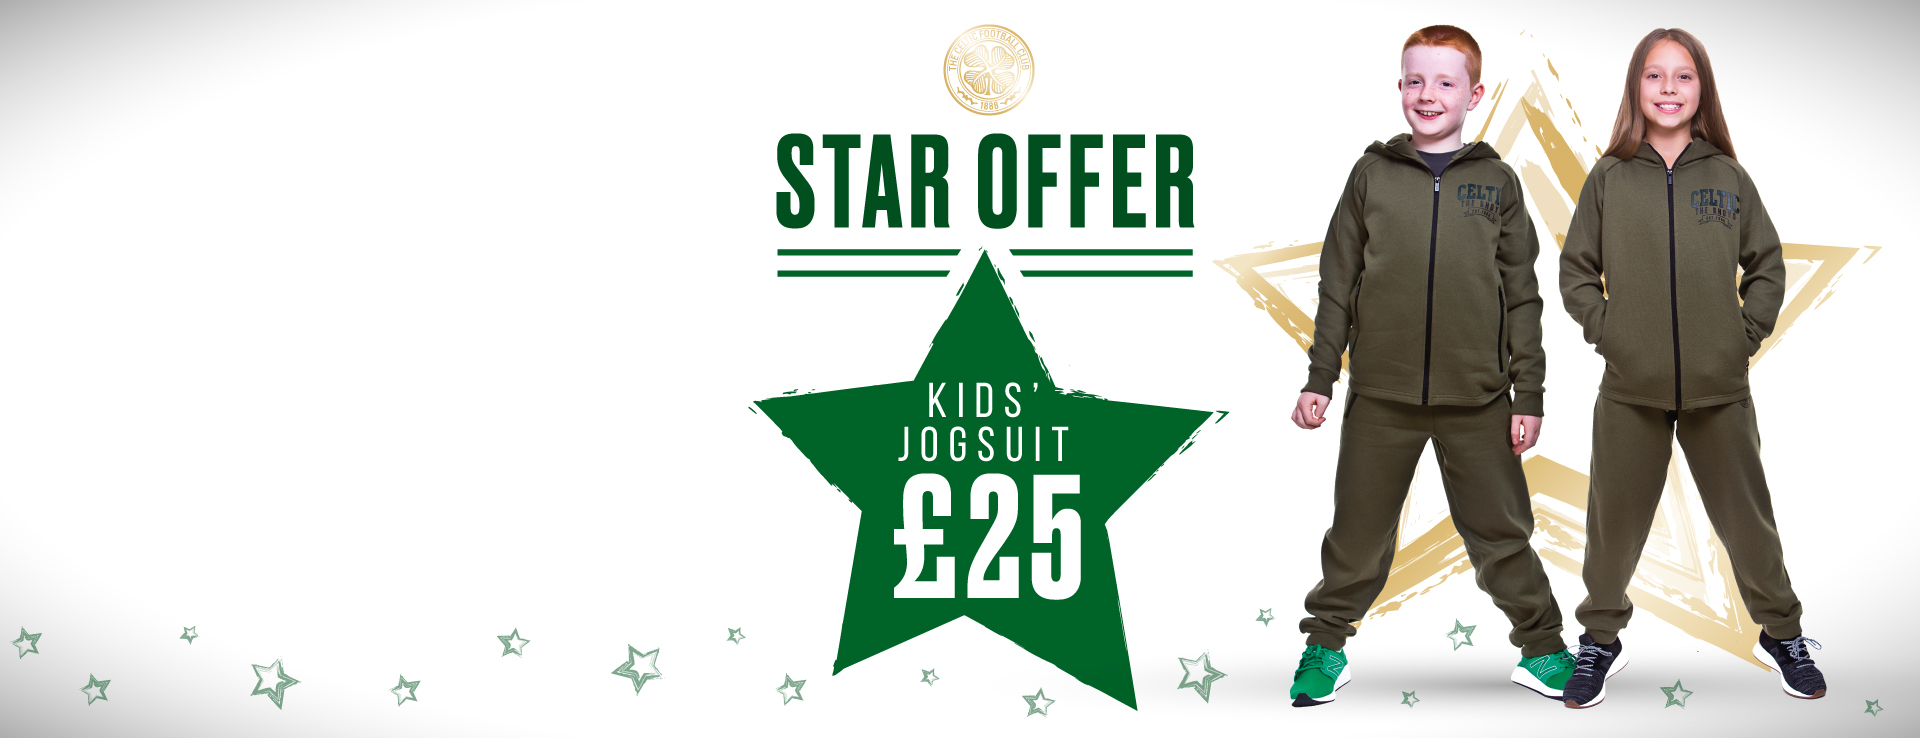 Star Offer Jogsuit